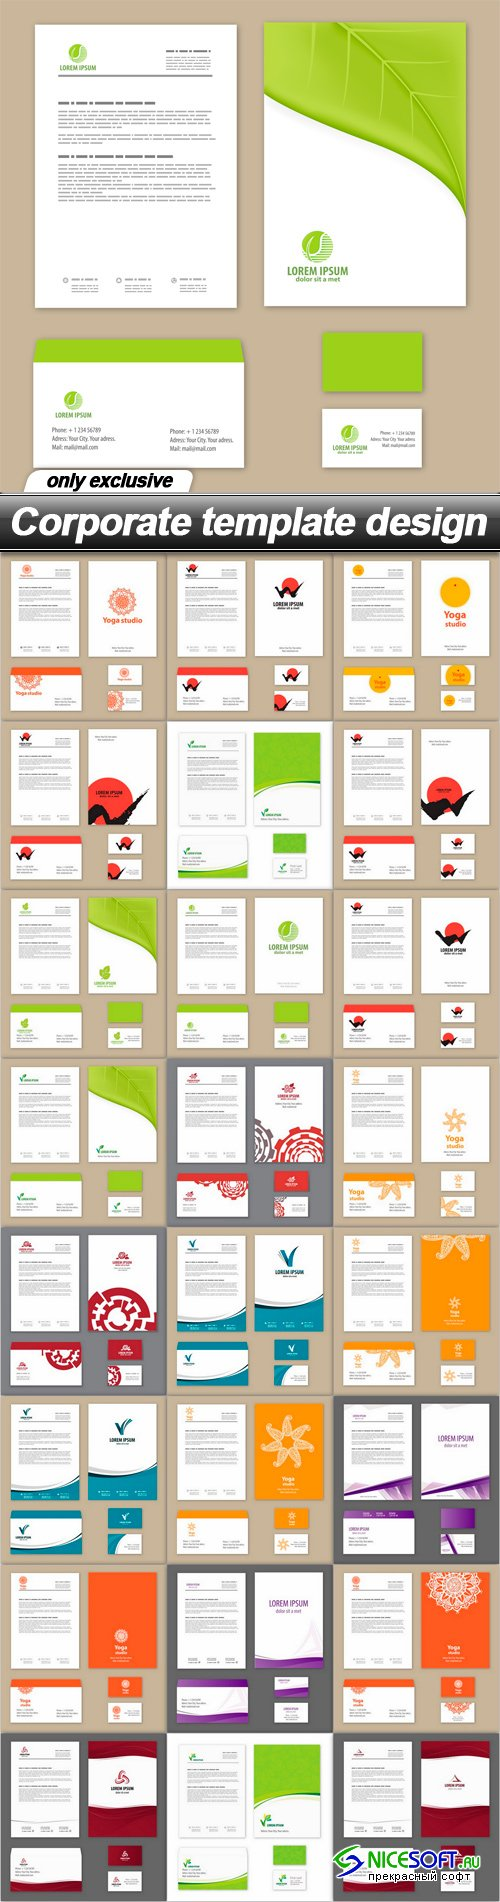 Corporate template design